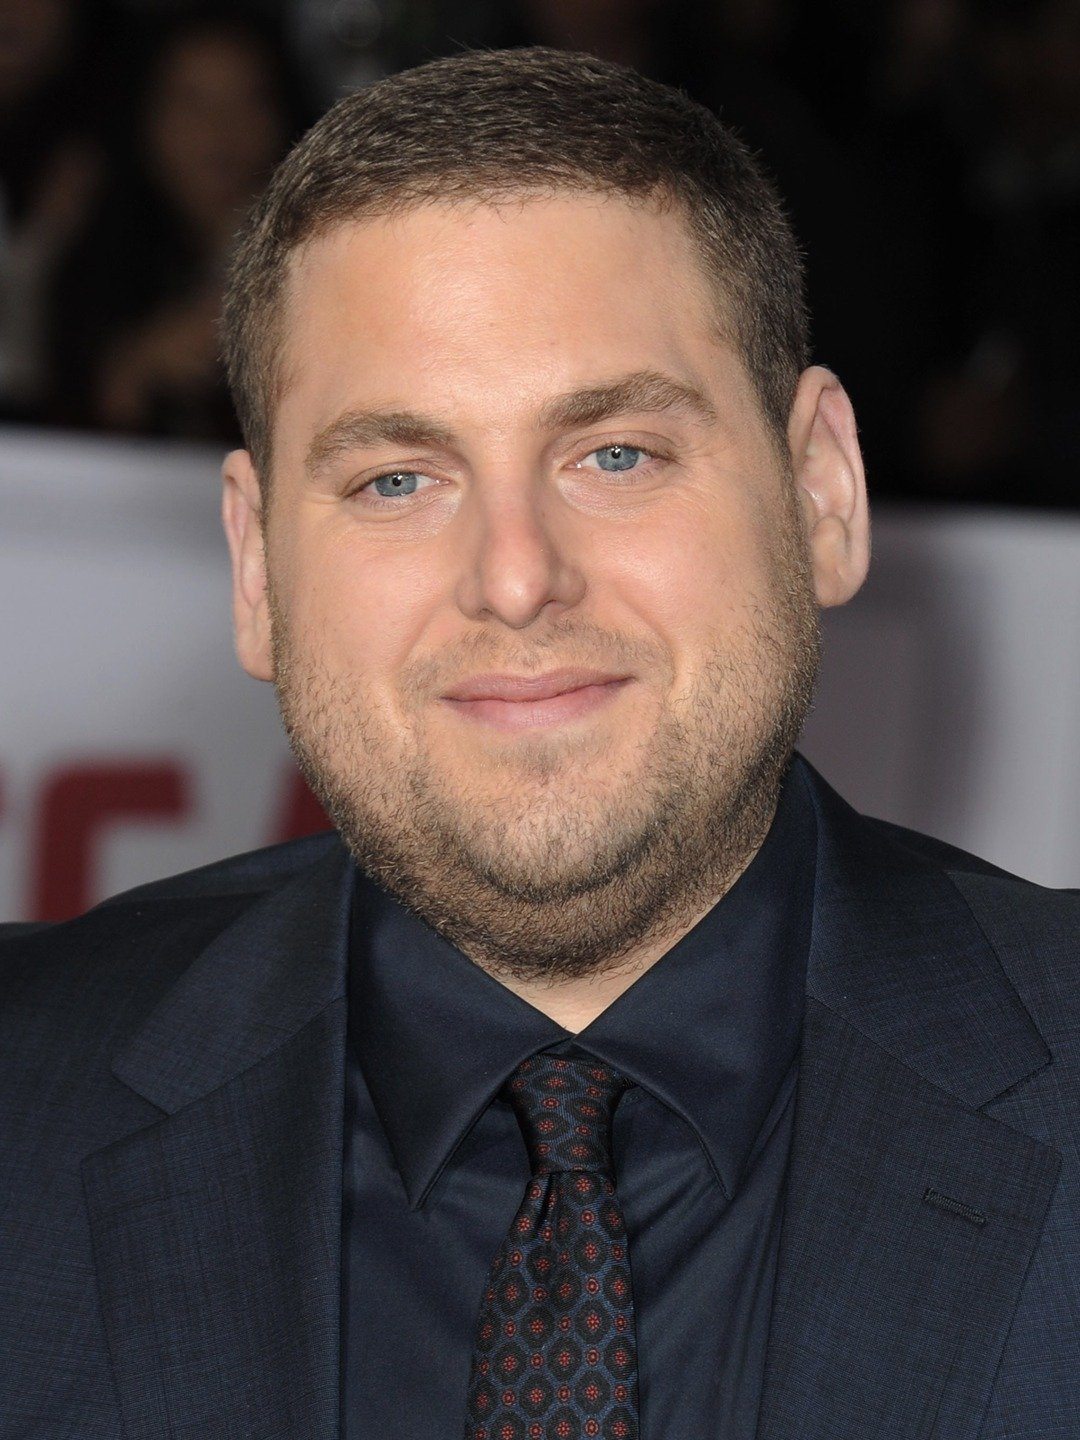 How tall is Jonah Hill?